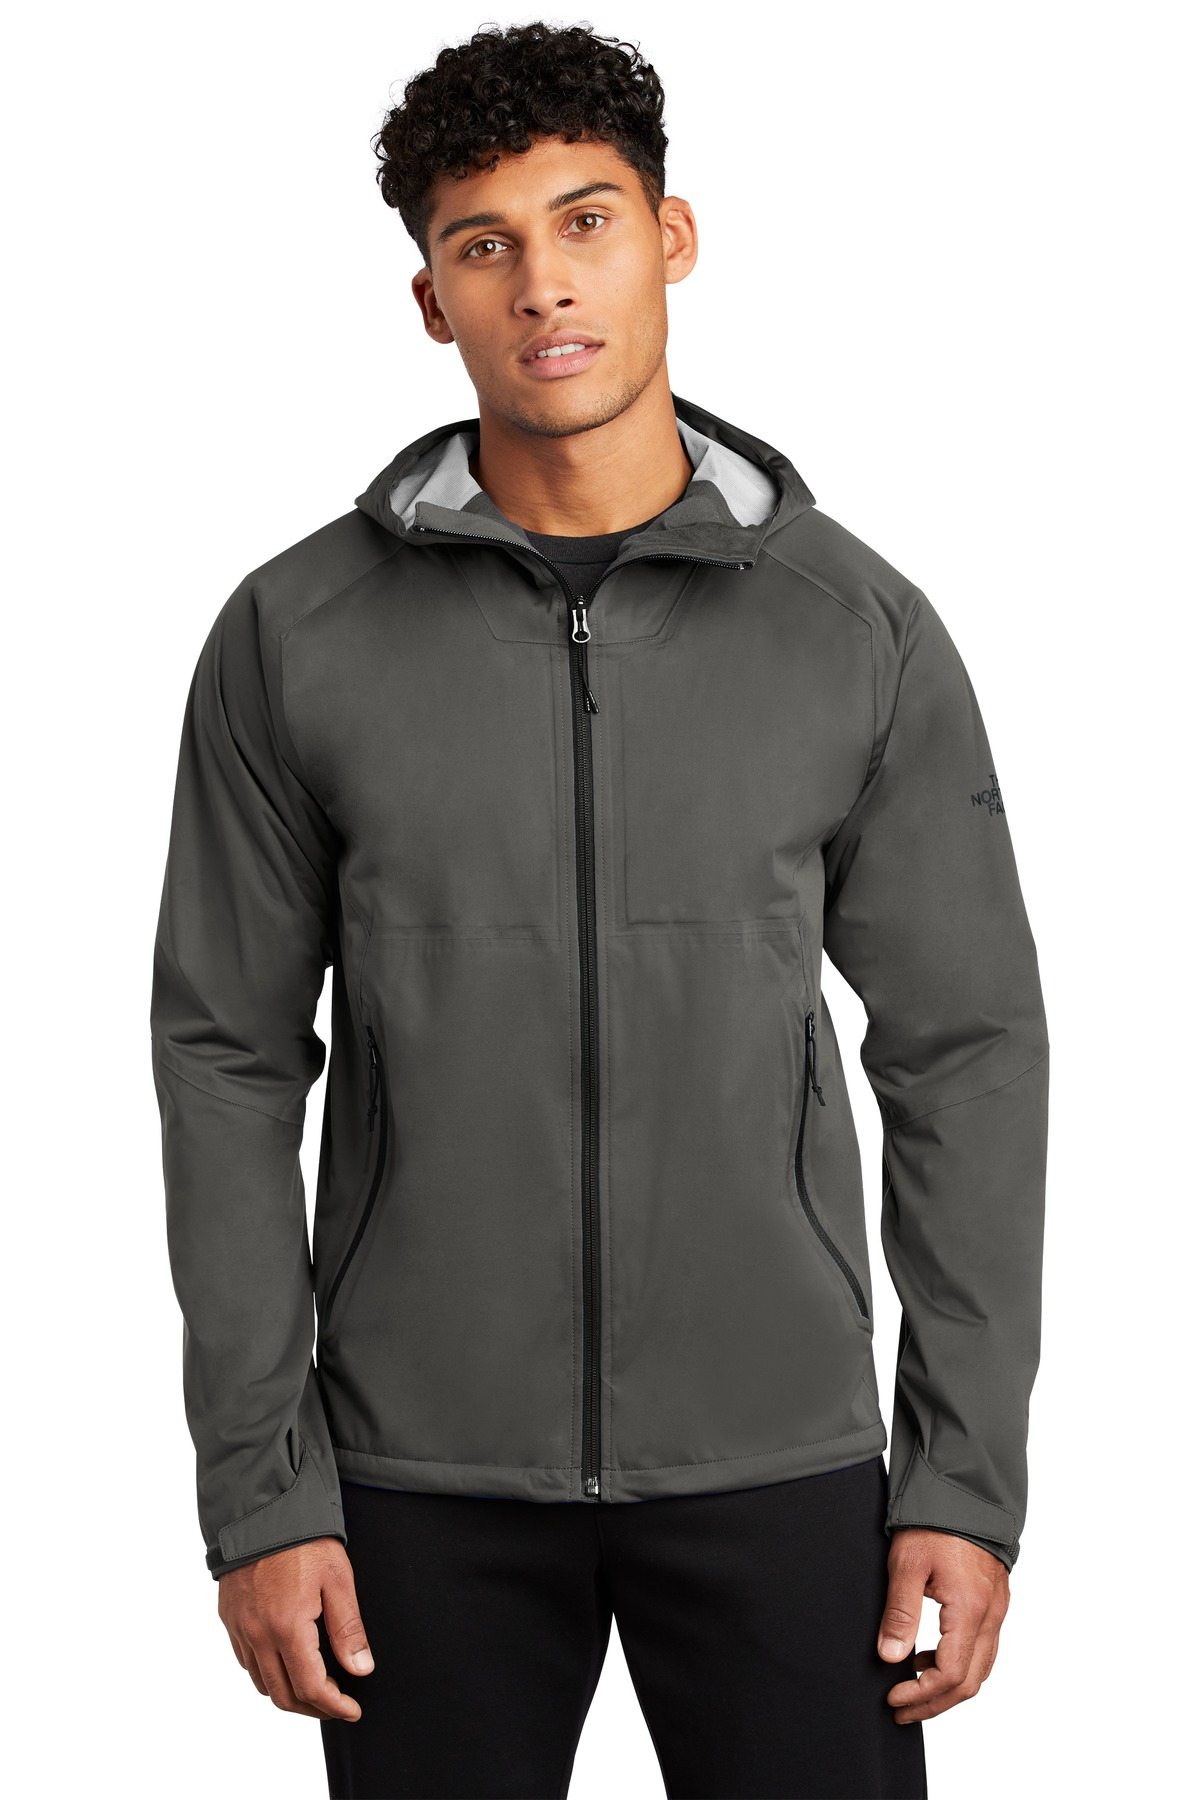 The North Face  ®  All-Weather DryVent  ™  Stretch Jacket NF0A47FG - Asphalt Grey